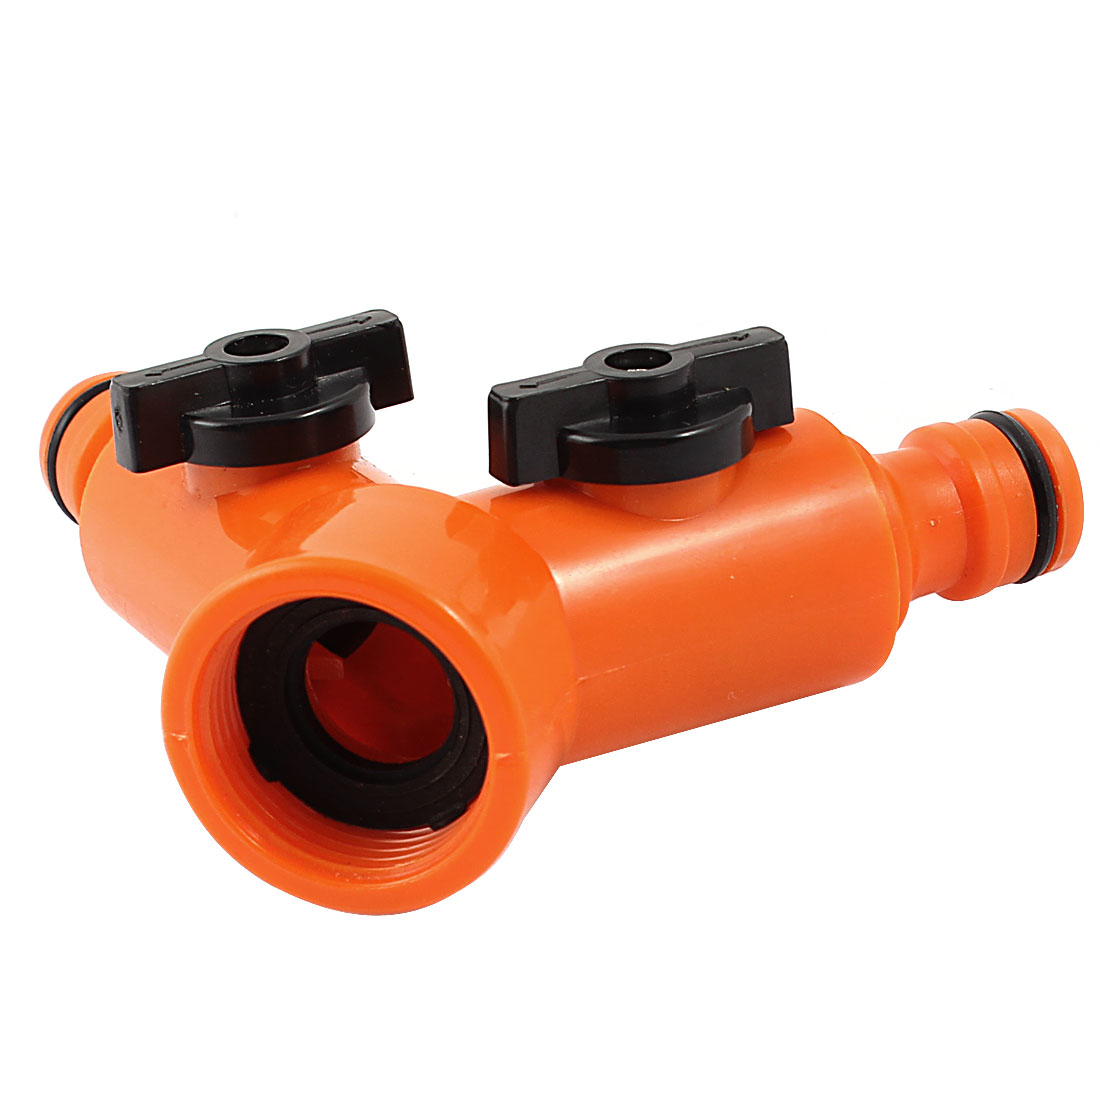 25mm Female Thread Orange Plastic 2 Outlets Hose Connector Adapter